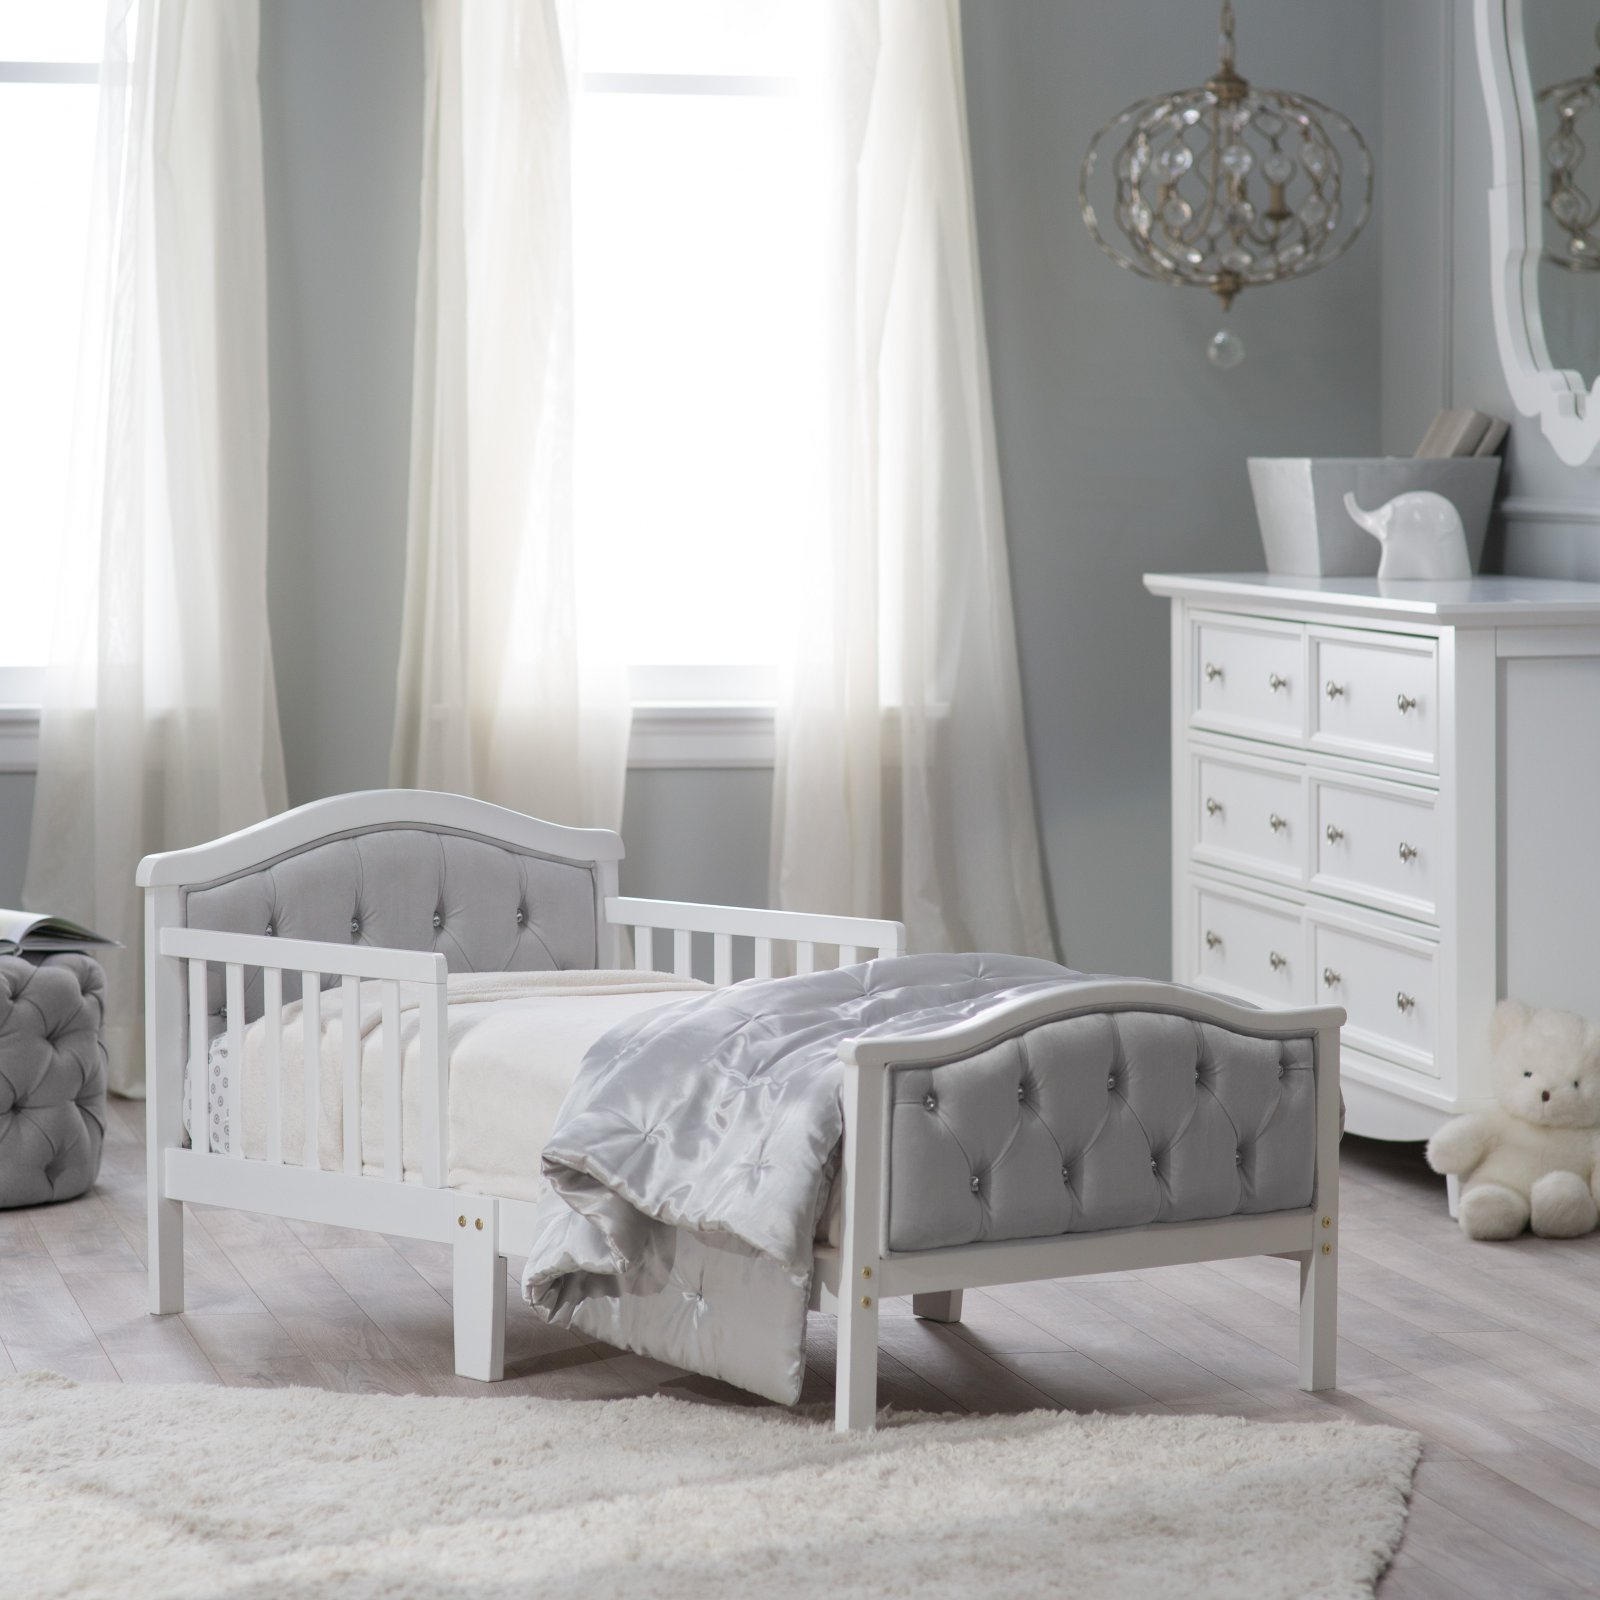 Orbelle Upholstered Toddler Bed, Off-White, With Bed Rails